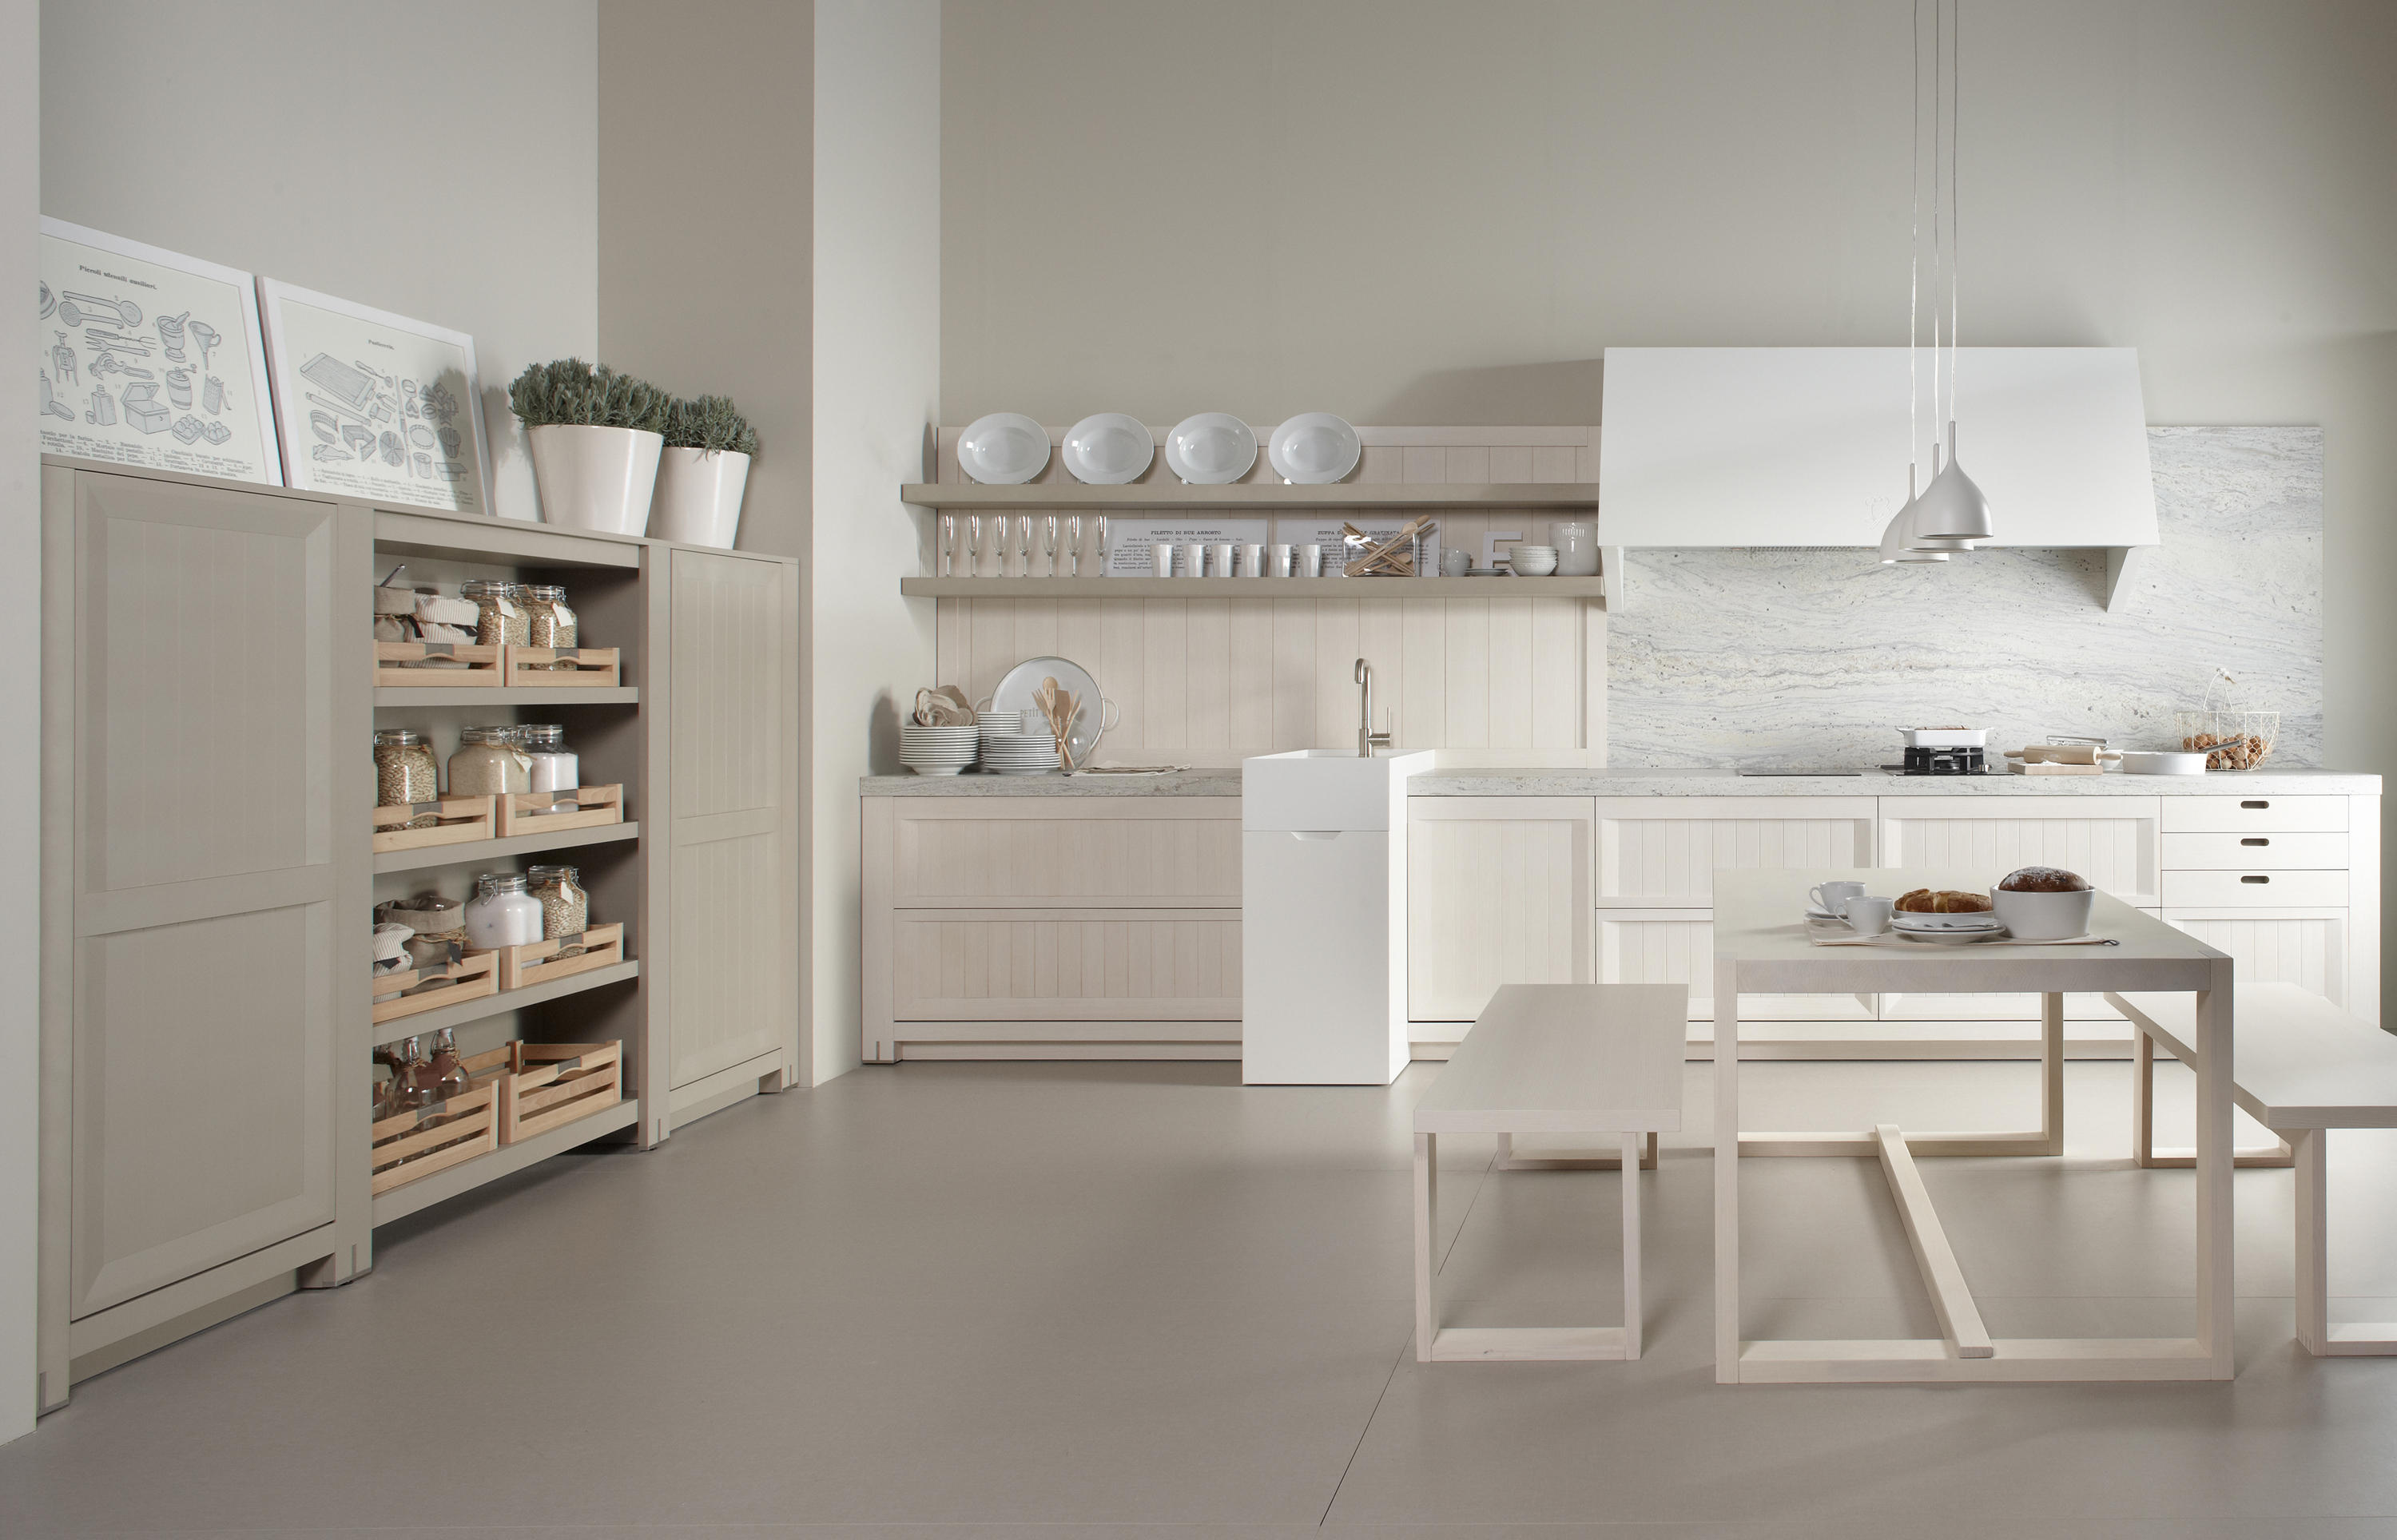 Arkadia Blanco Nata Cocinas Integrales De Dica Architonic # Muebles Momento Actual